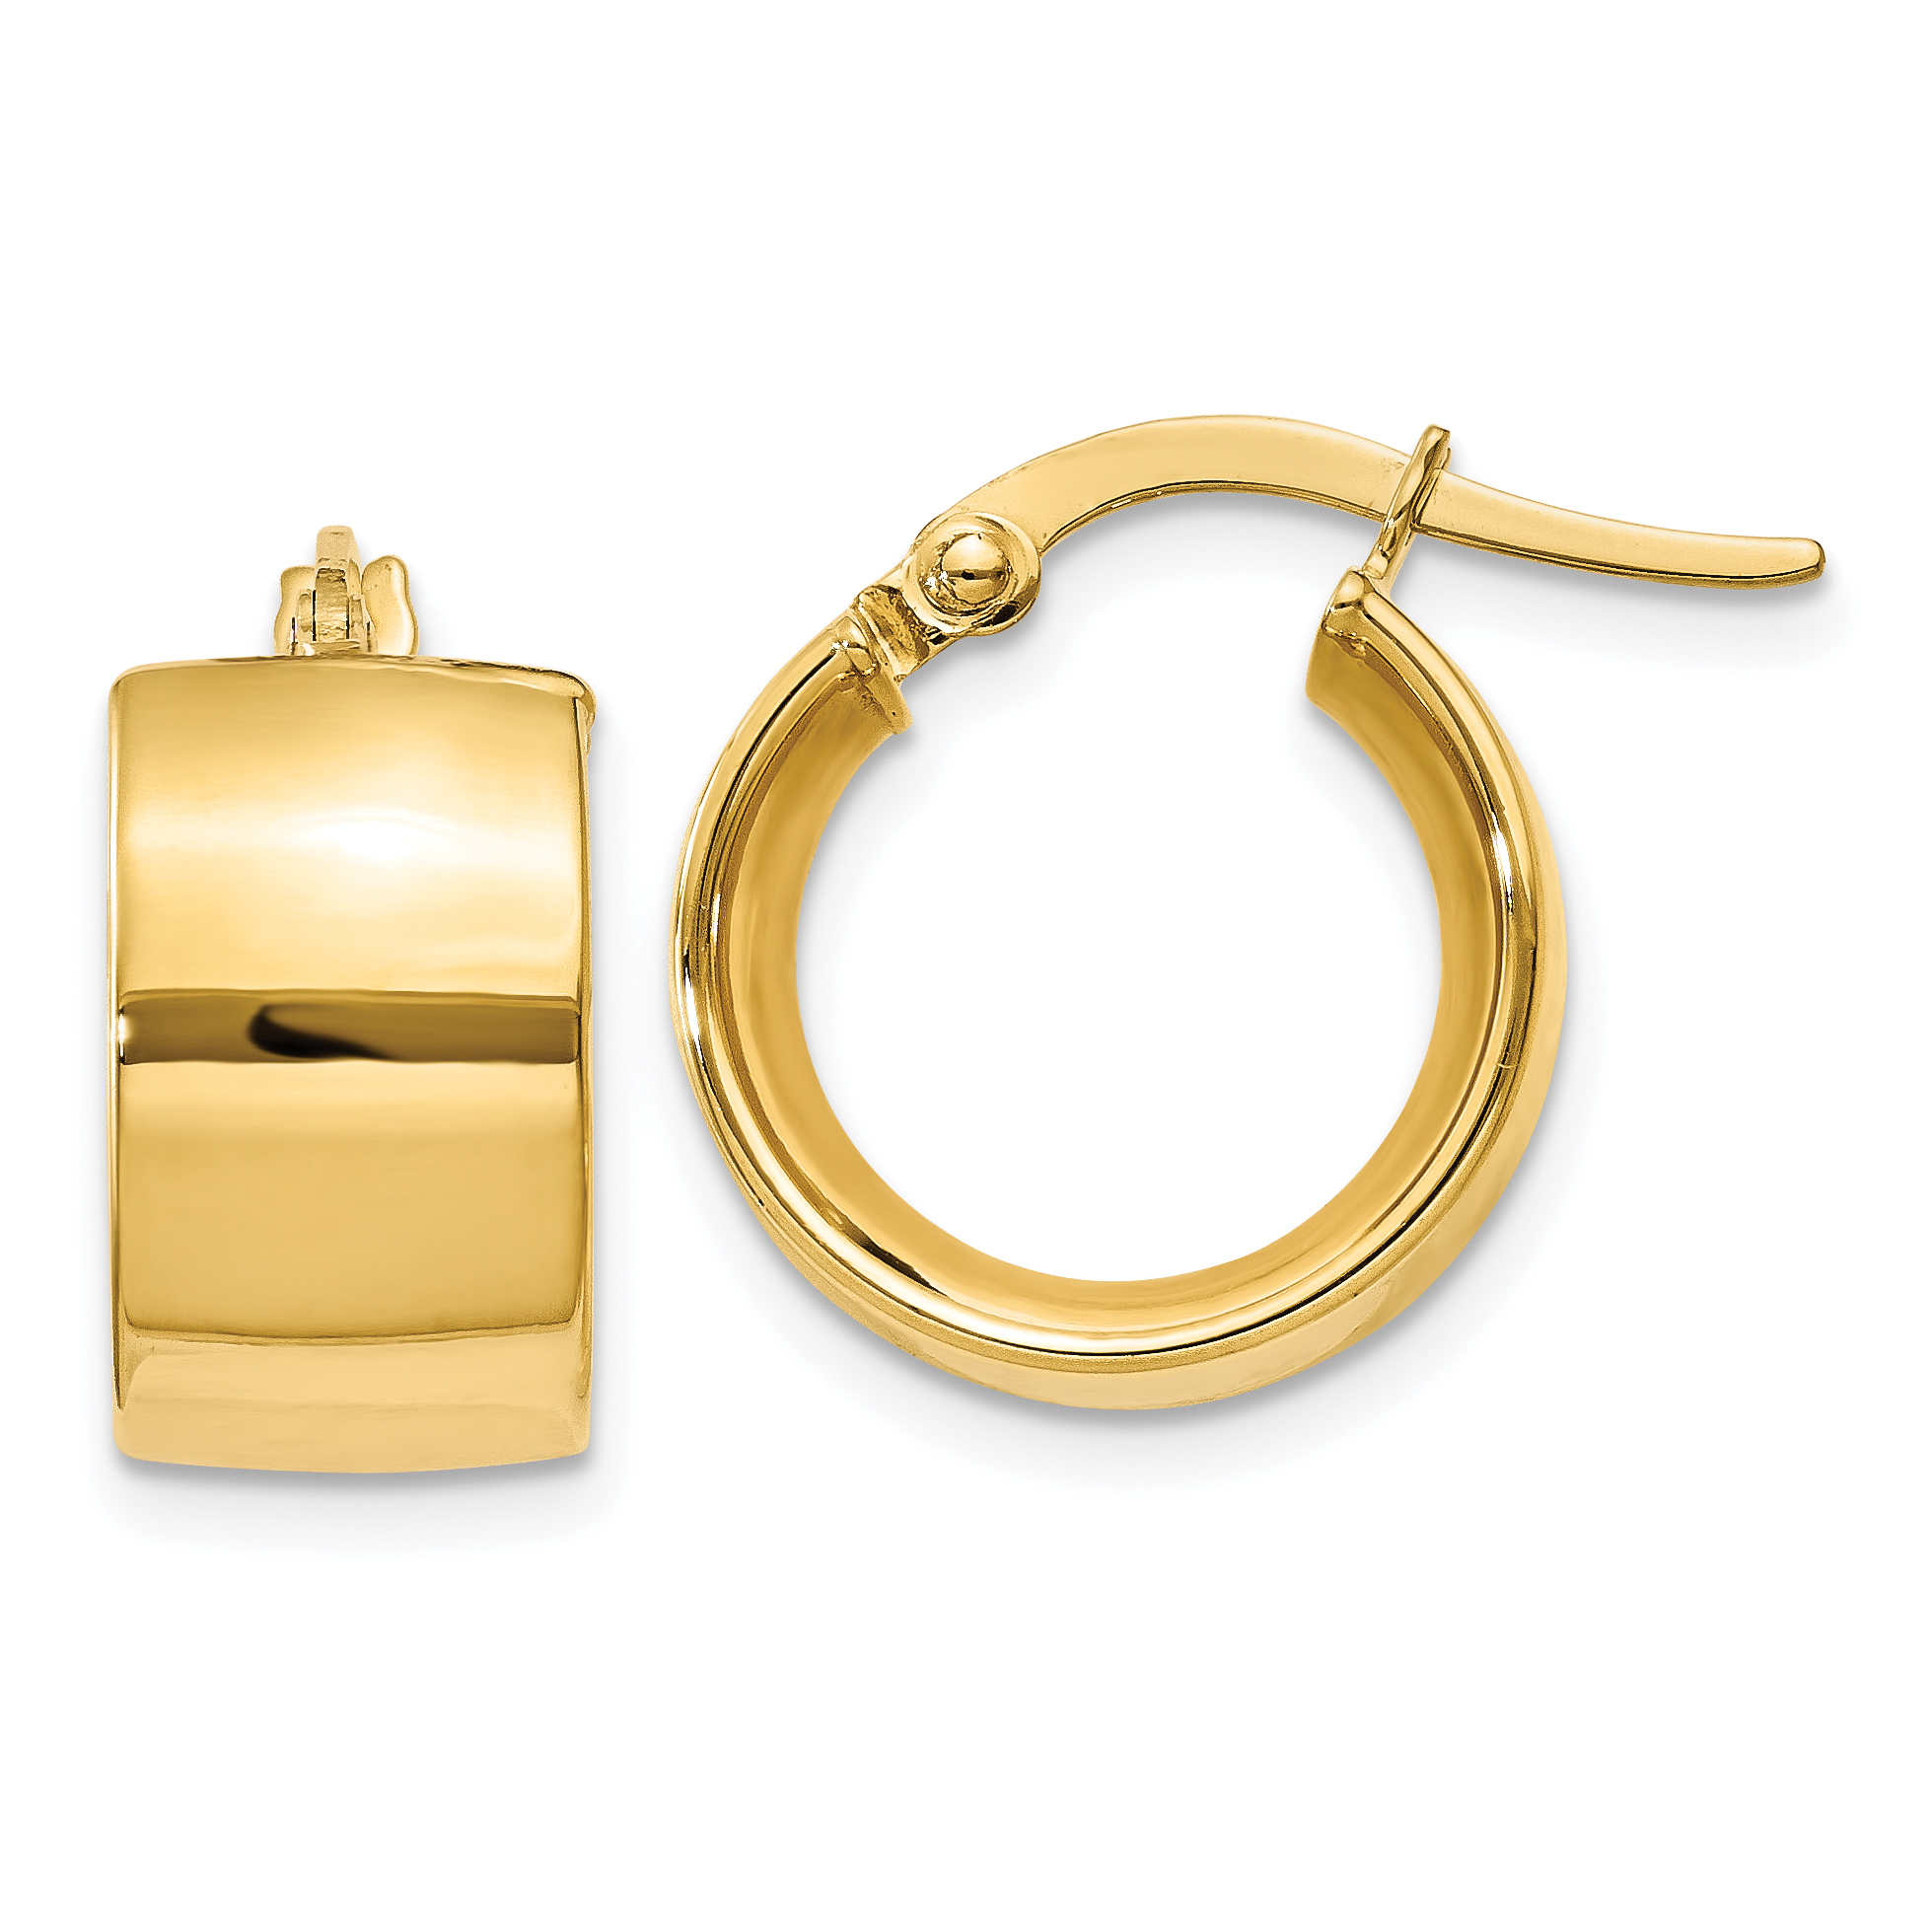 14k Yellow Gold  7.75mm Polished Round Hoop (7.75x11mm) Earrings